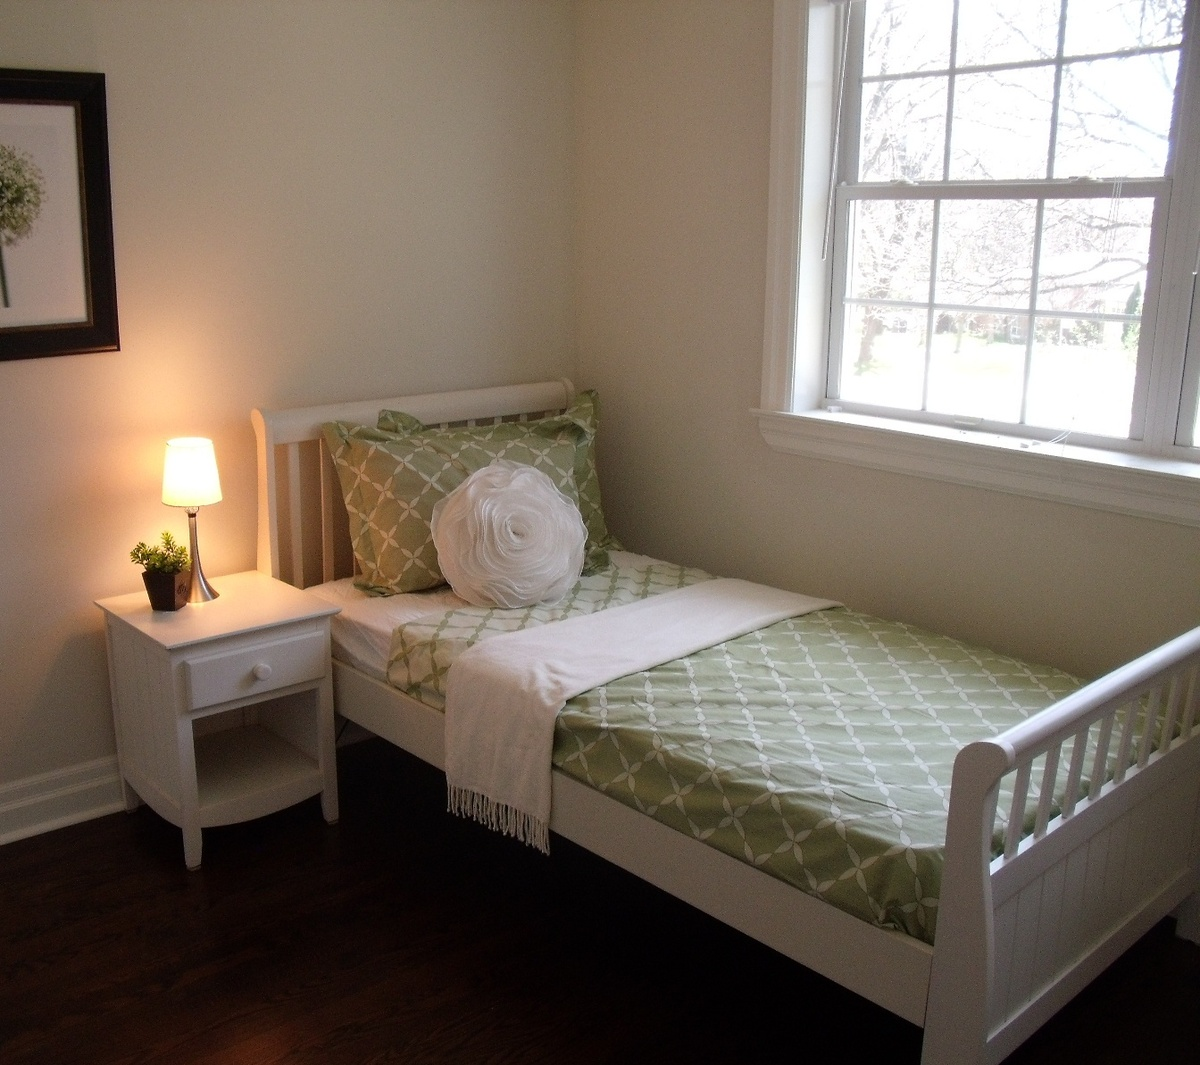 Single Bedrooms For Rent: Single Bed Bedroom Set Rental For Home Staging By Luxury